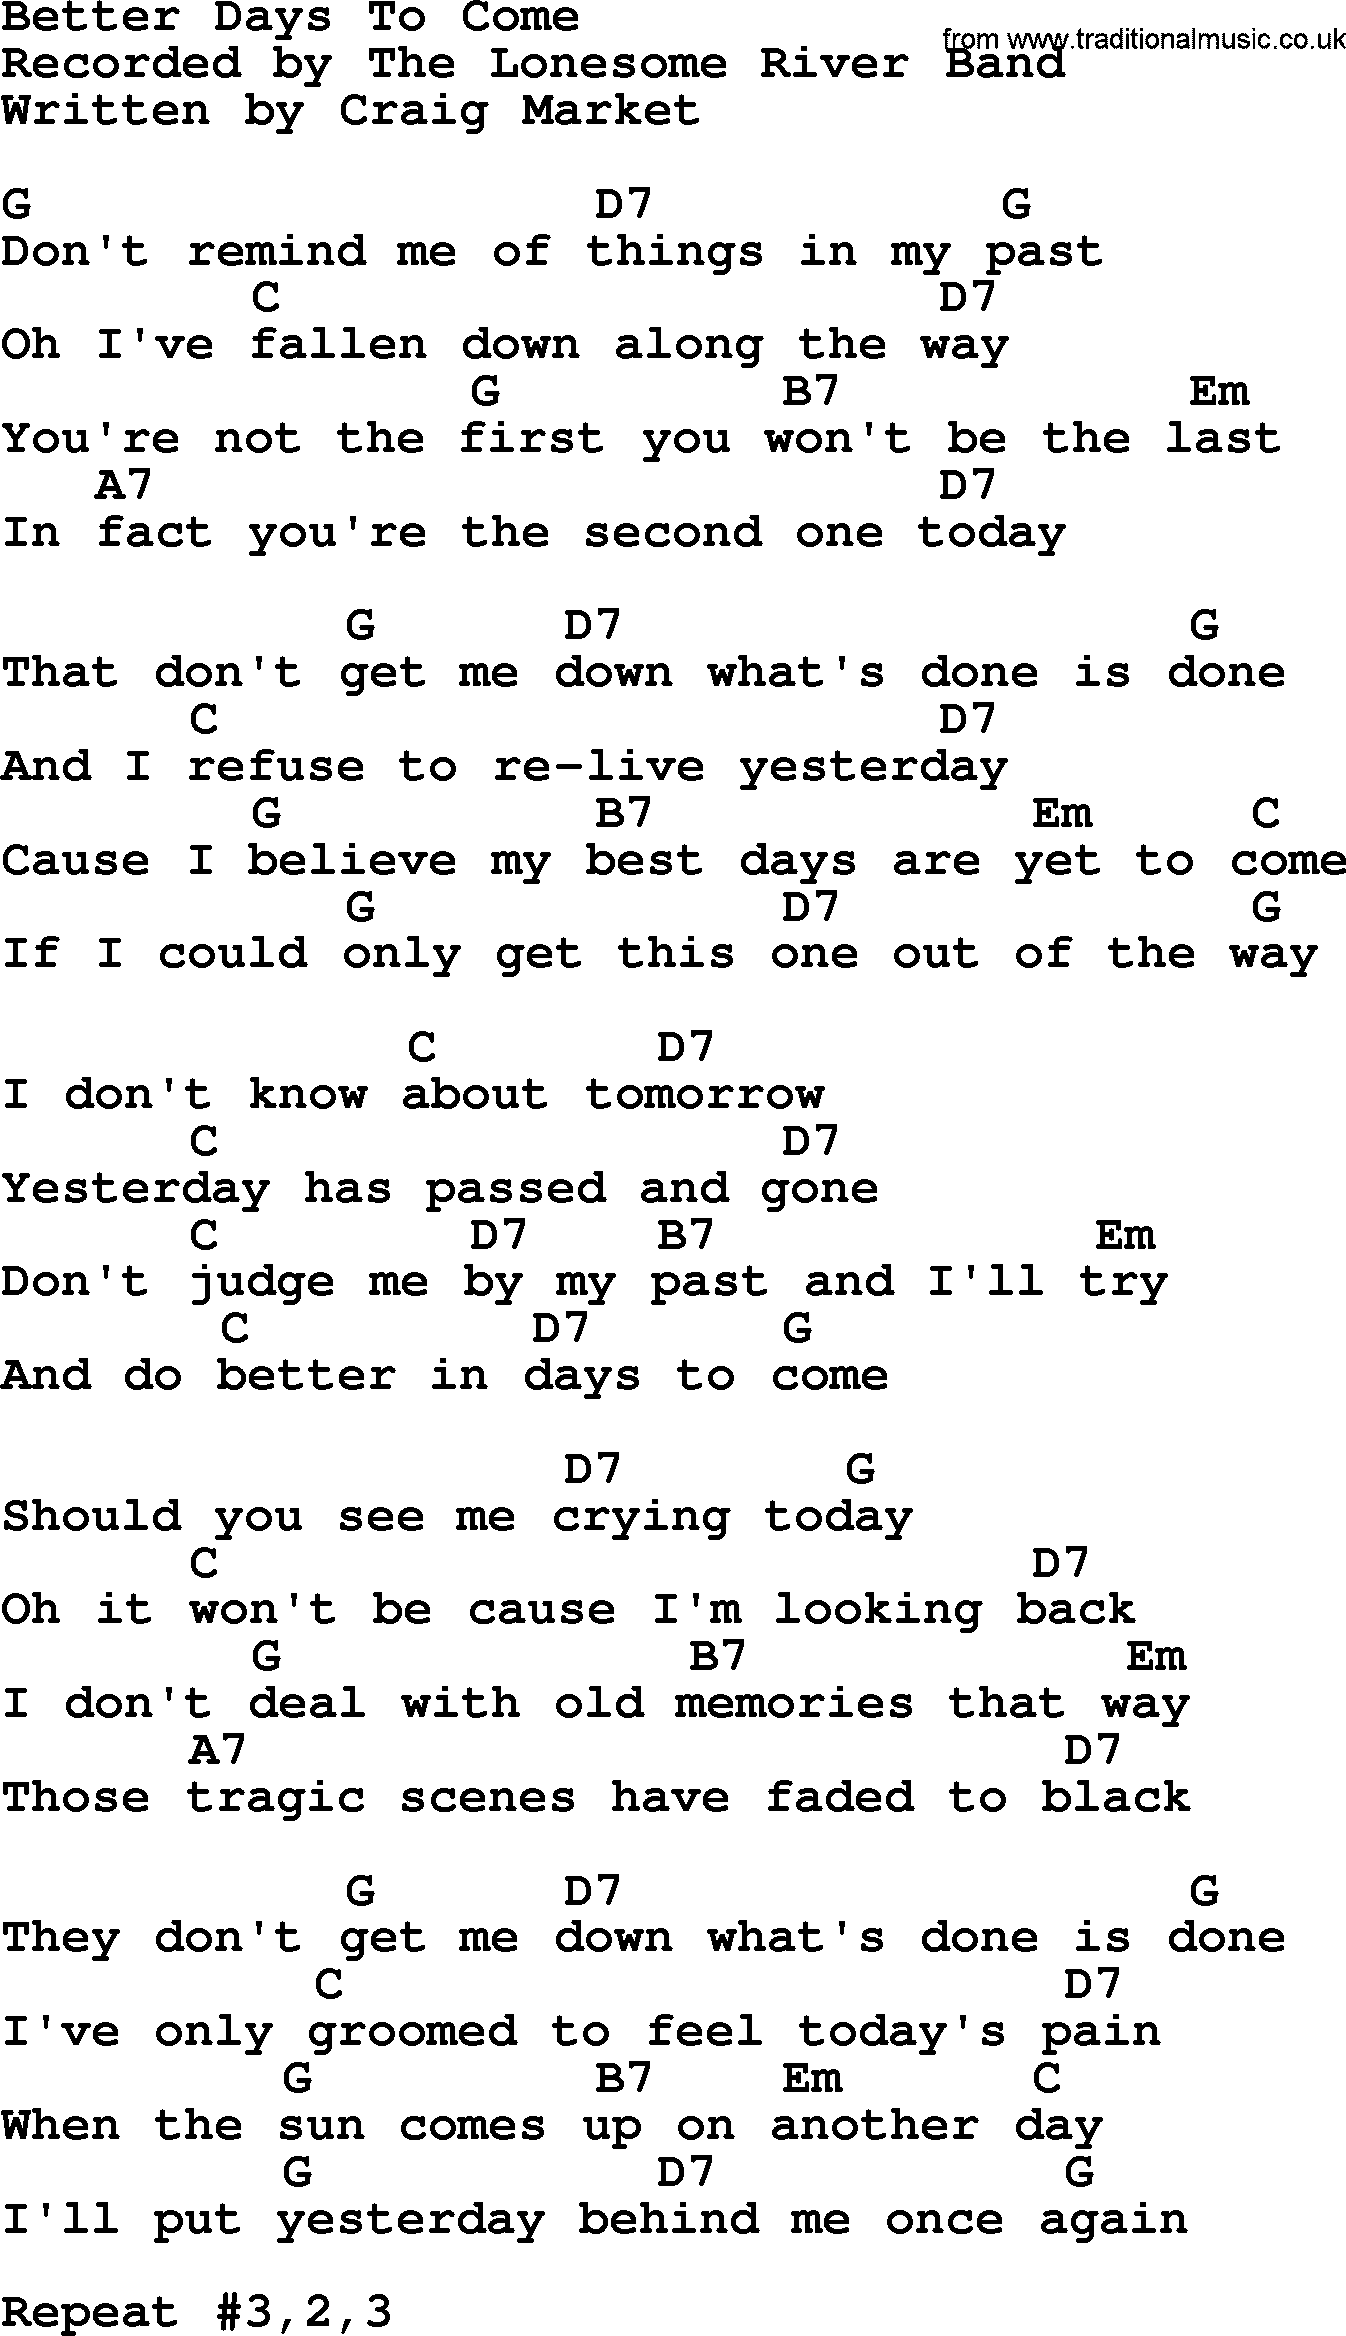 Better Days To Come Bluegrass Lyrics With Chords